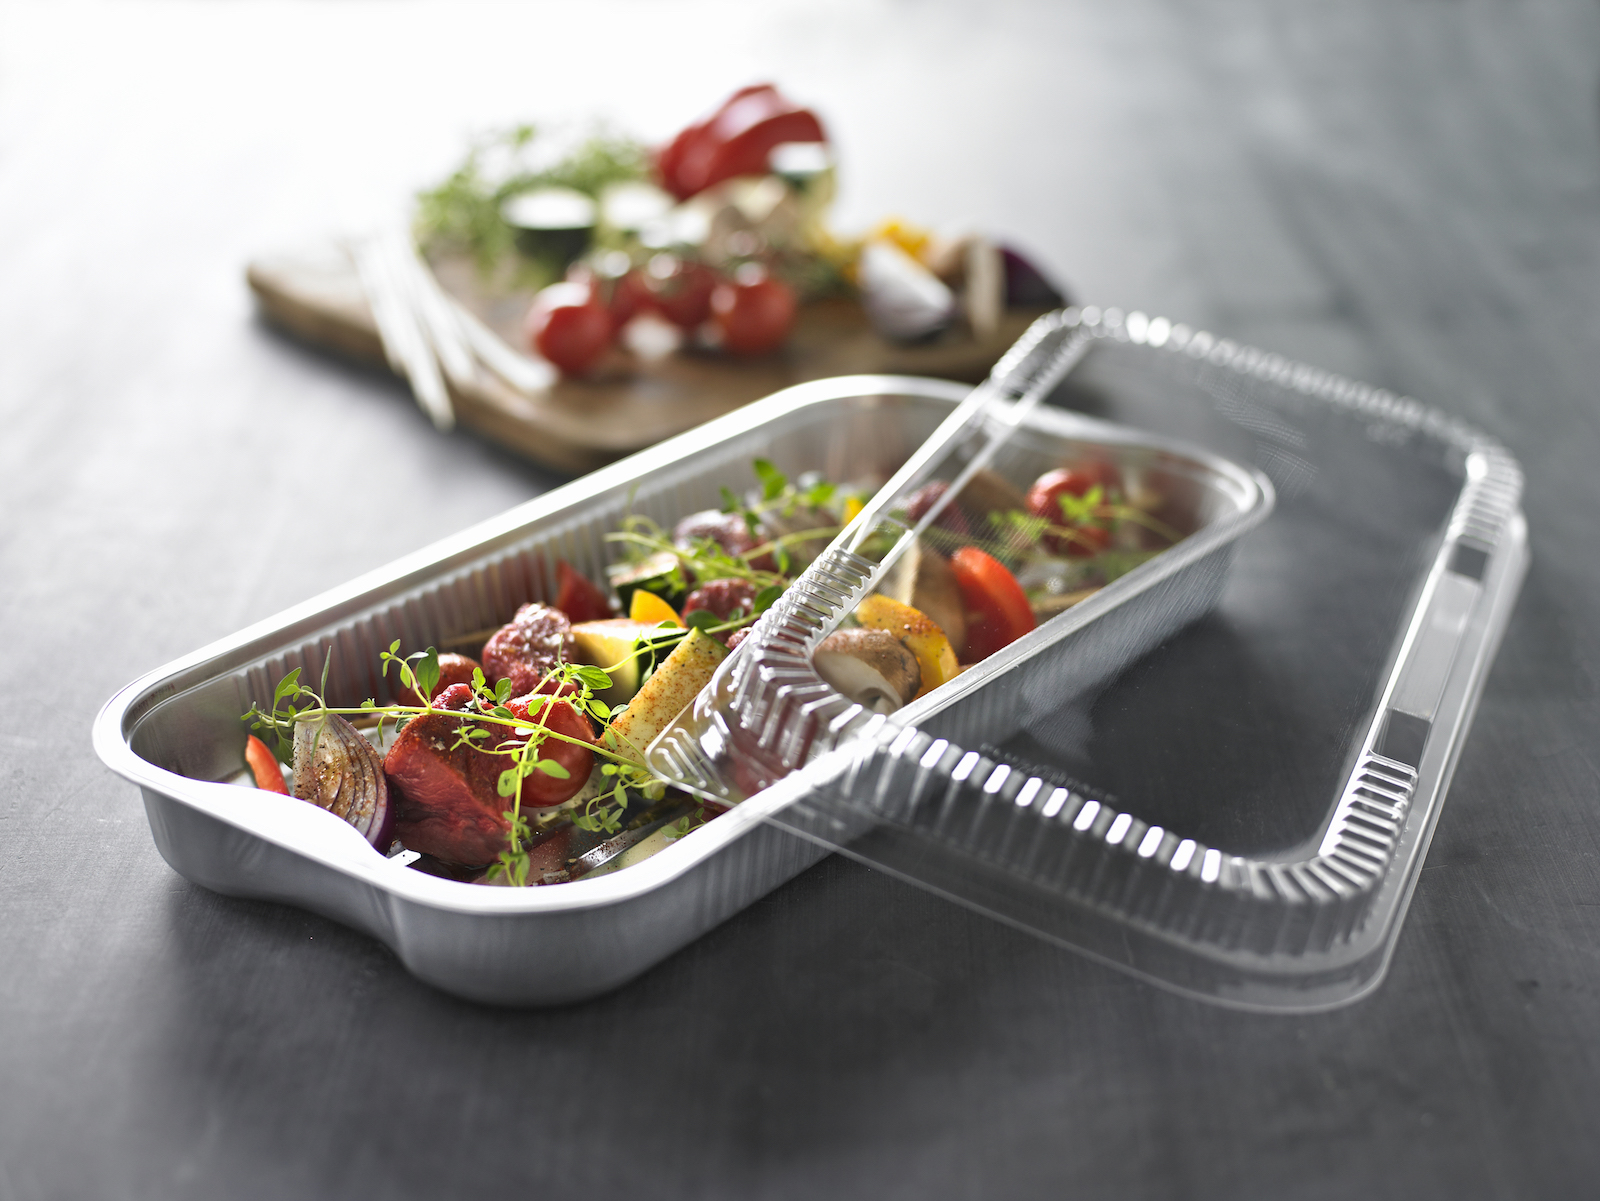 the success of convenience food and ready made meals Your ready meals are amazing my market carries about 10 different kinds and every one of them is really good such a great compliment to any meal whenever you want a touch of rich flavor and spice.